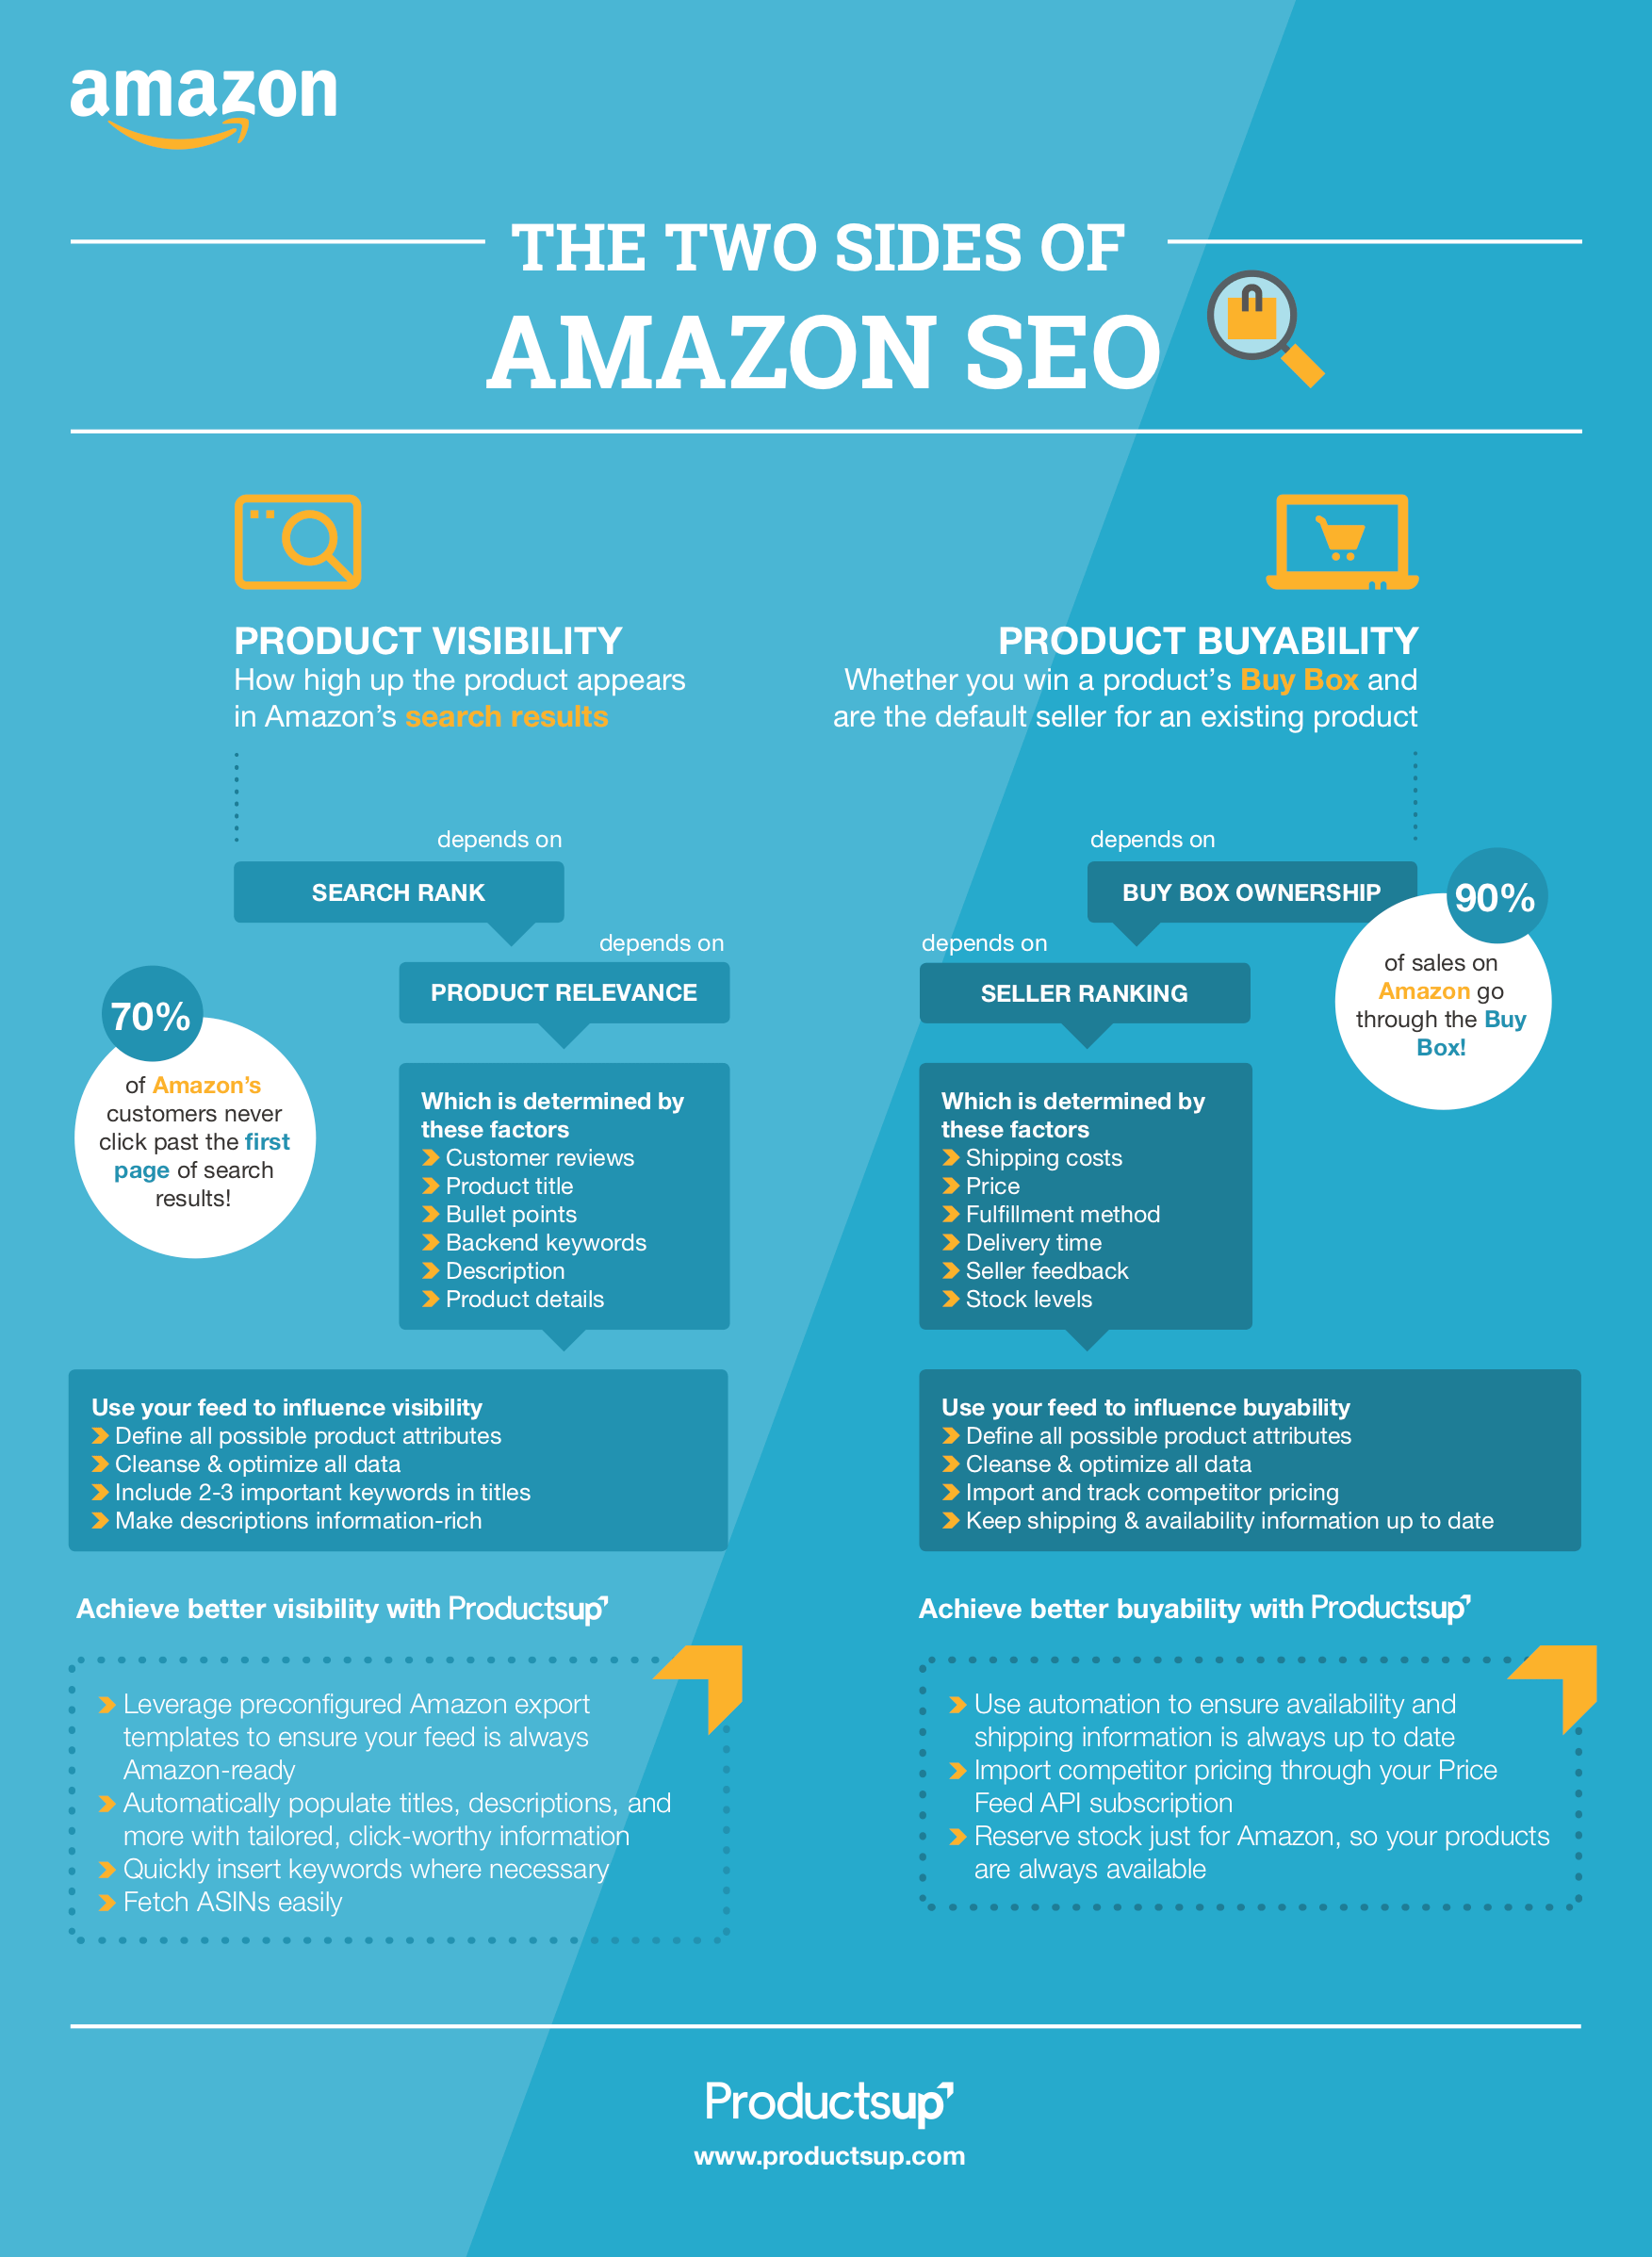 Amazon SEO infographic